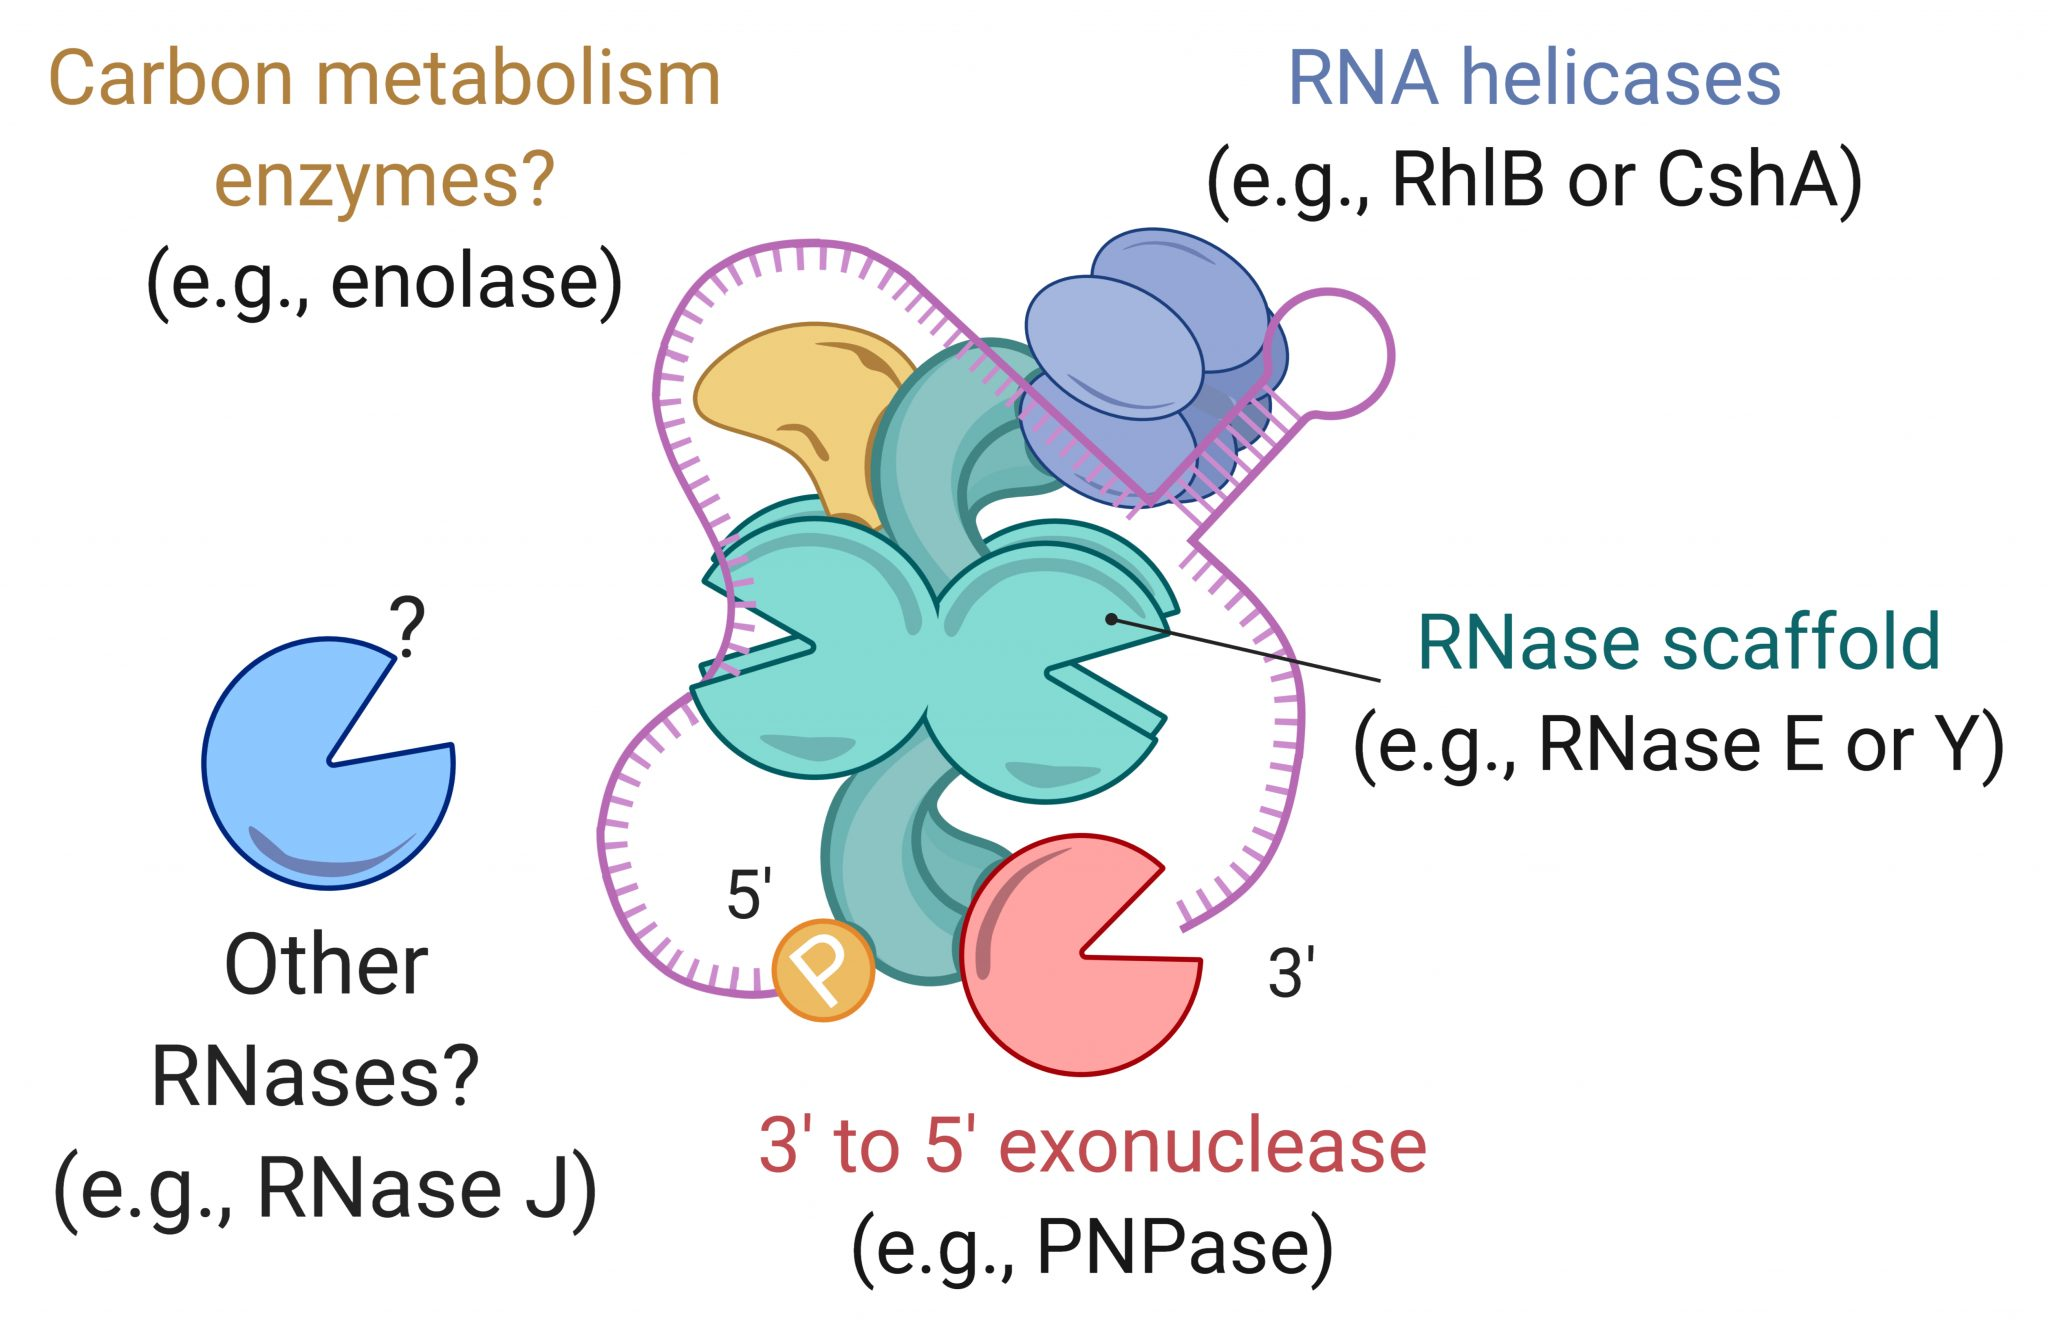 RNA degradosome